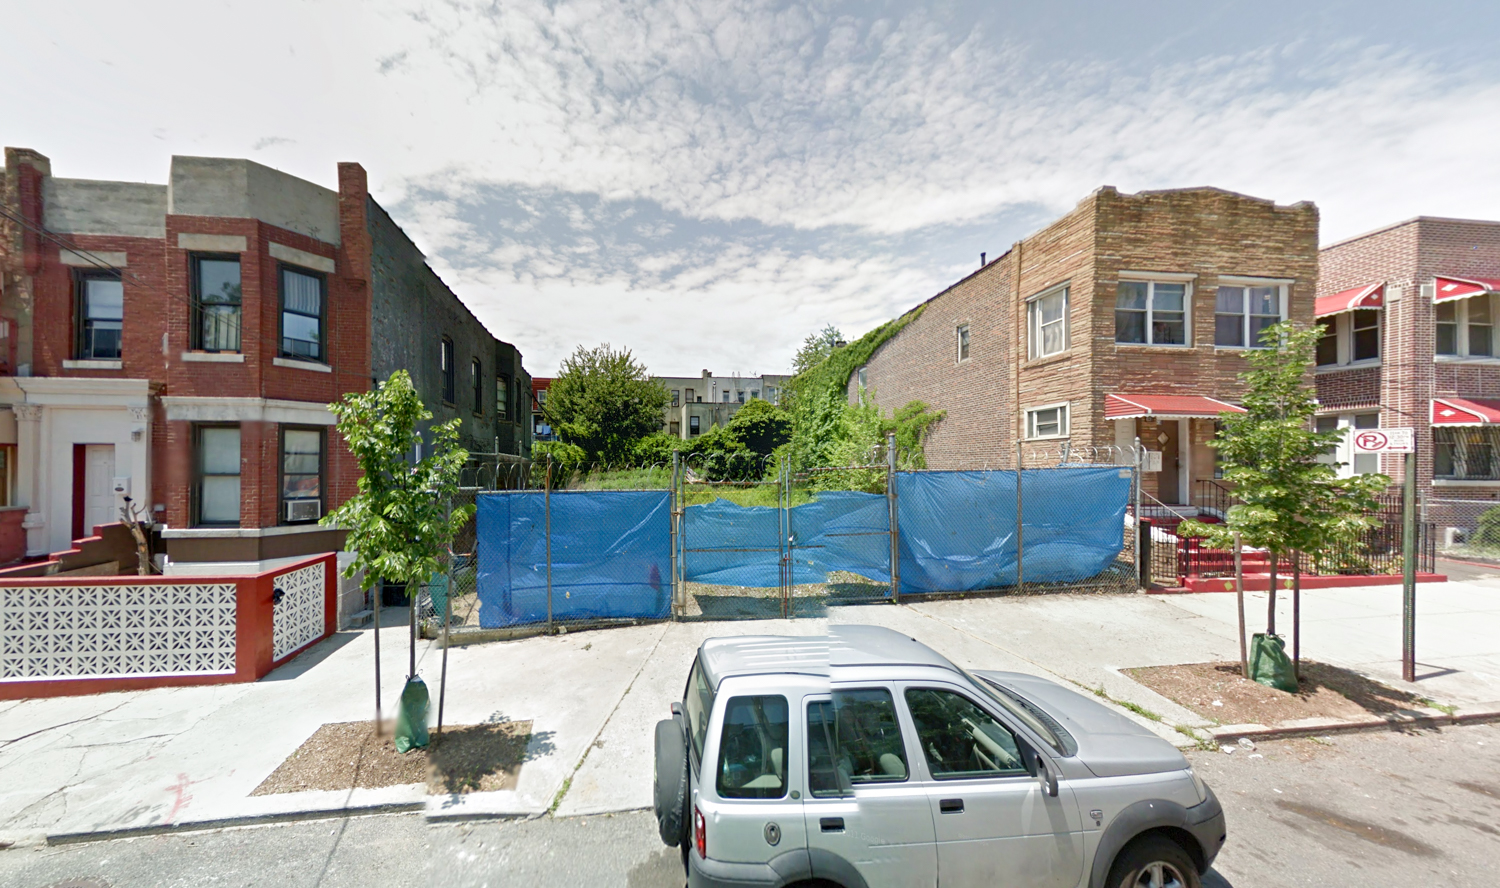 629 Faile Street, via Google Maps